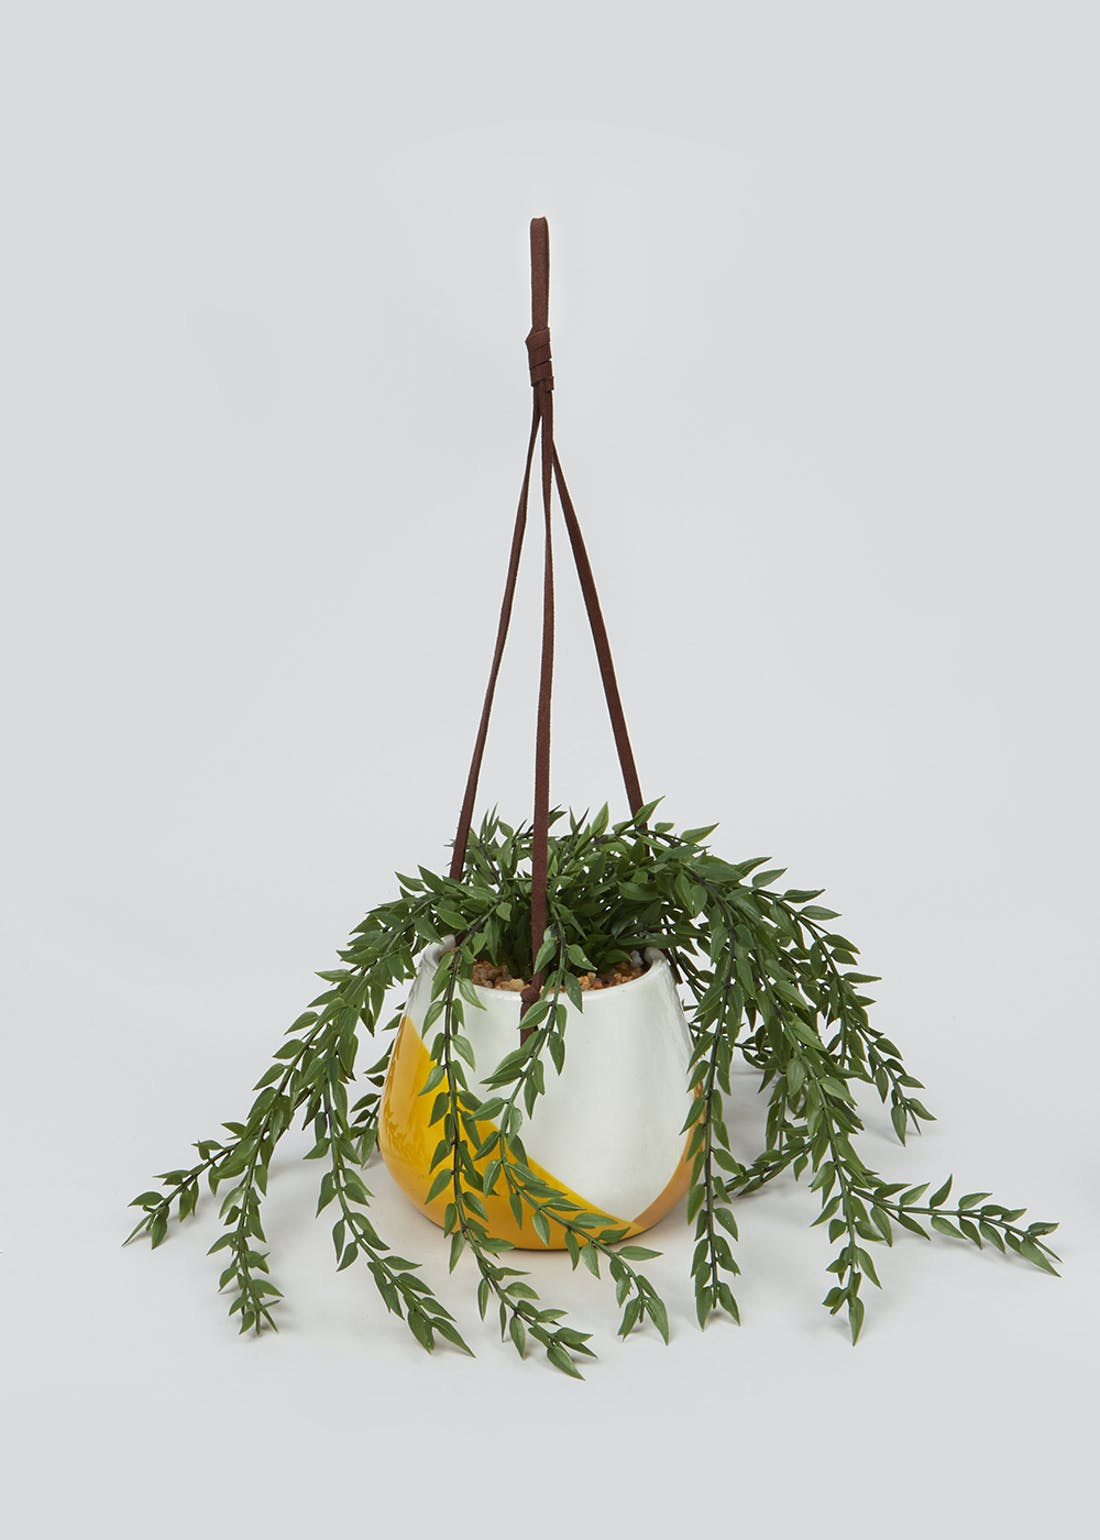 Plant in Painted Hanging Planter (35cm x 14cm)